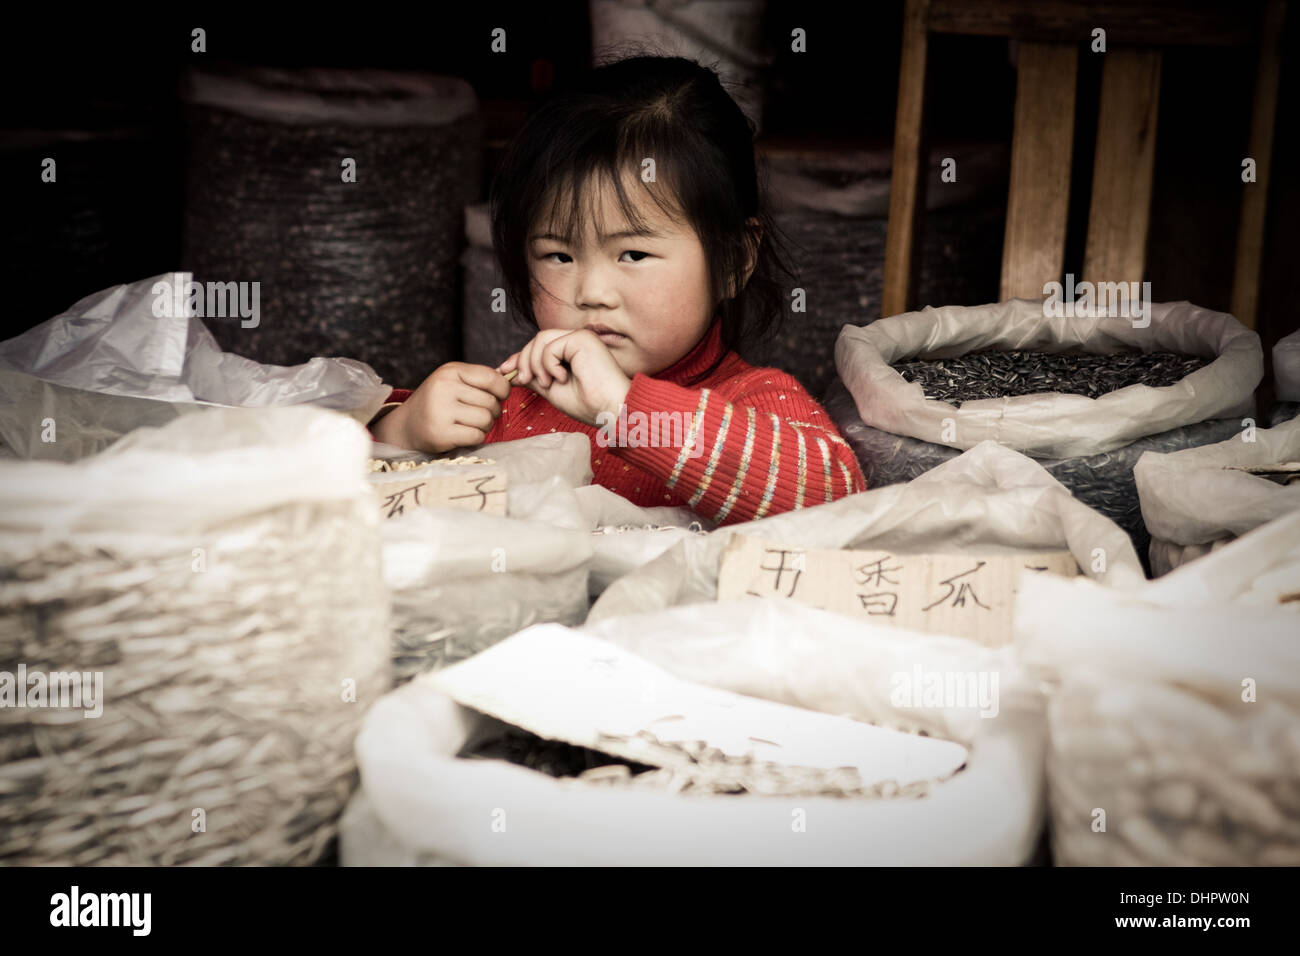 Young chinese child worker in Shanghai China. Selling on the streets of the market as a underage worker. - Stock Image